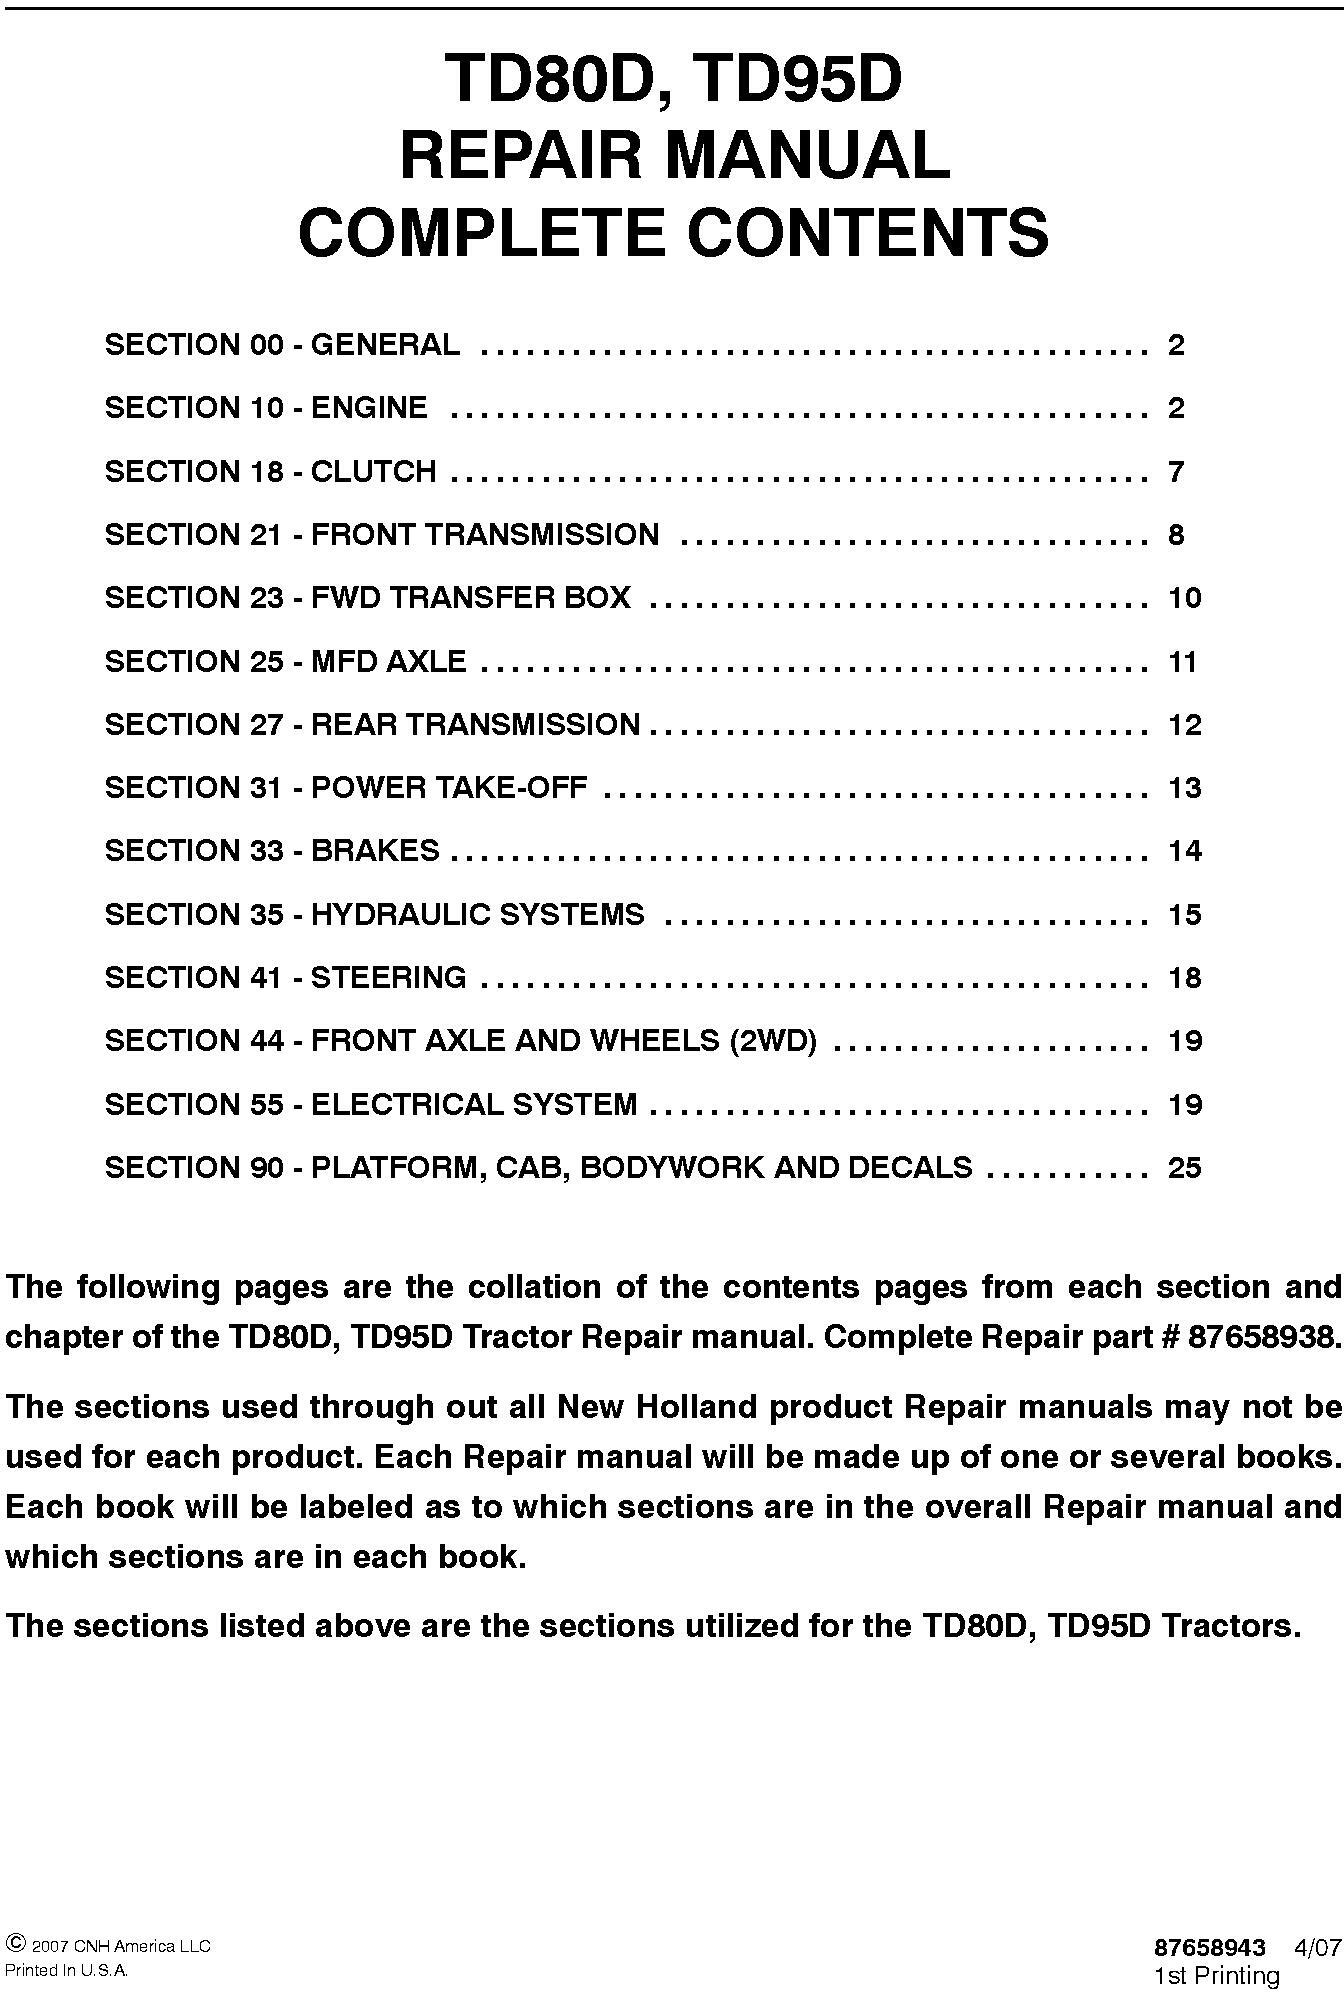 New Holland TD80D, TD95D Tractor Service Manual - 19627